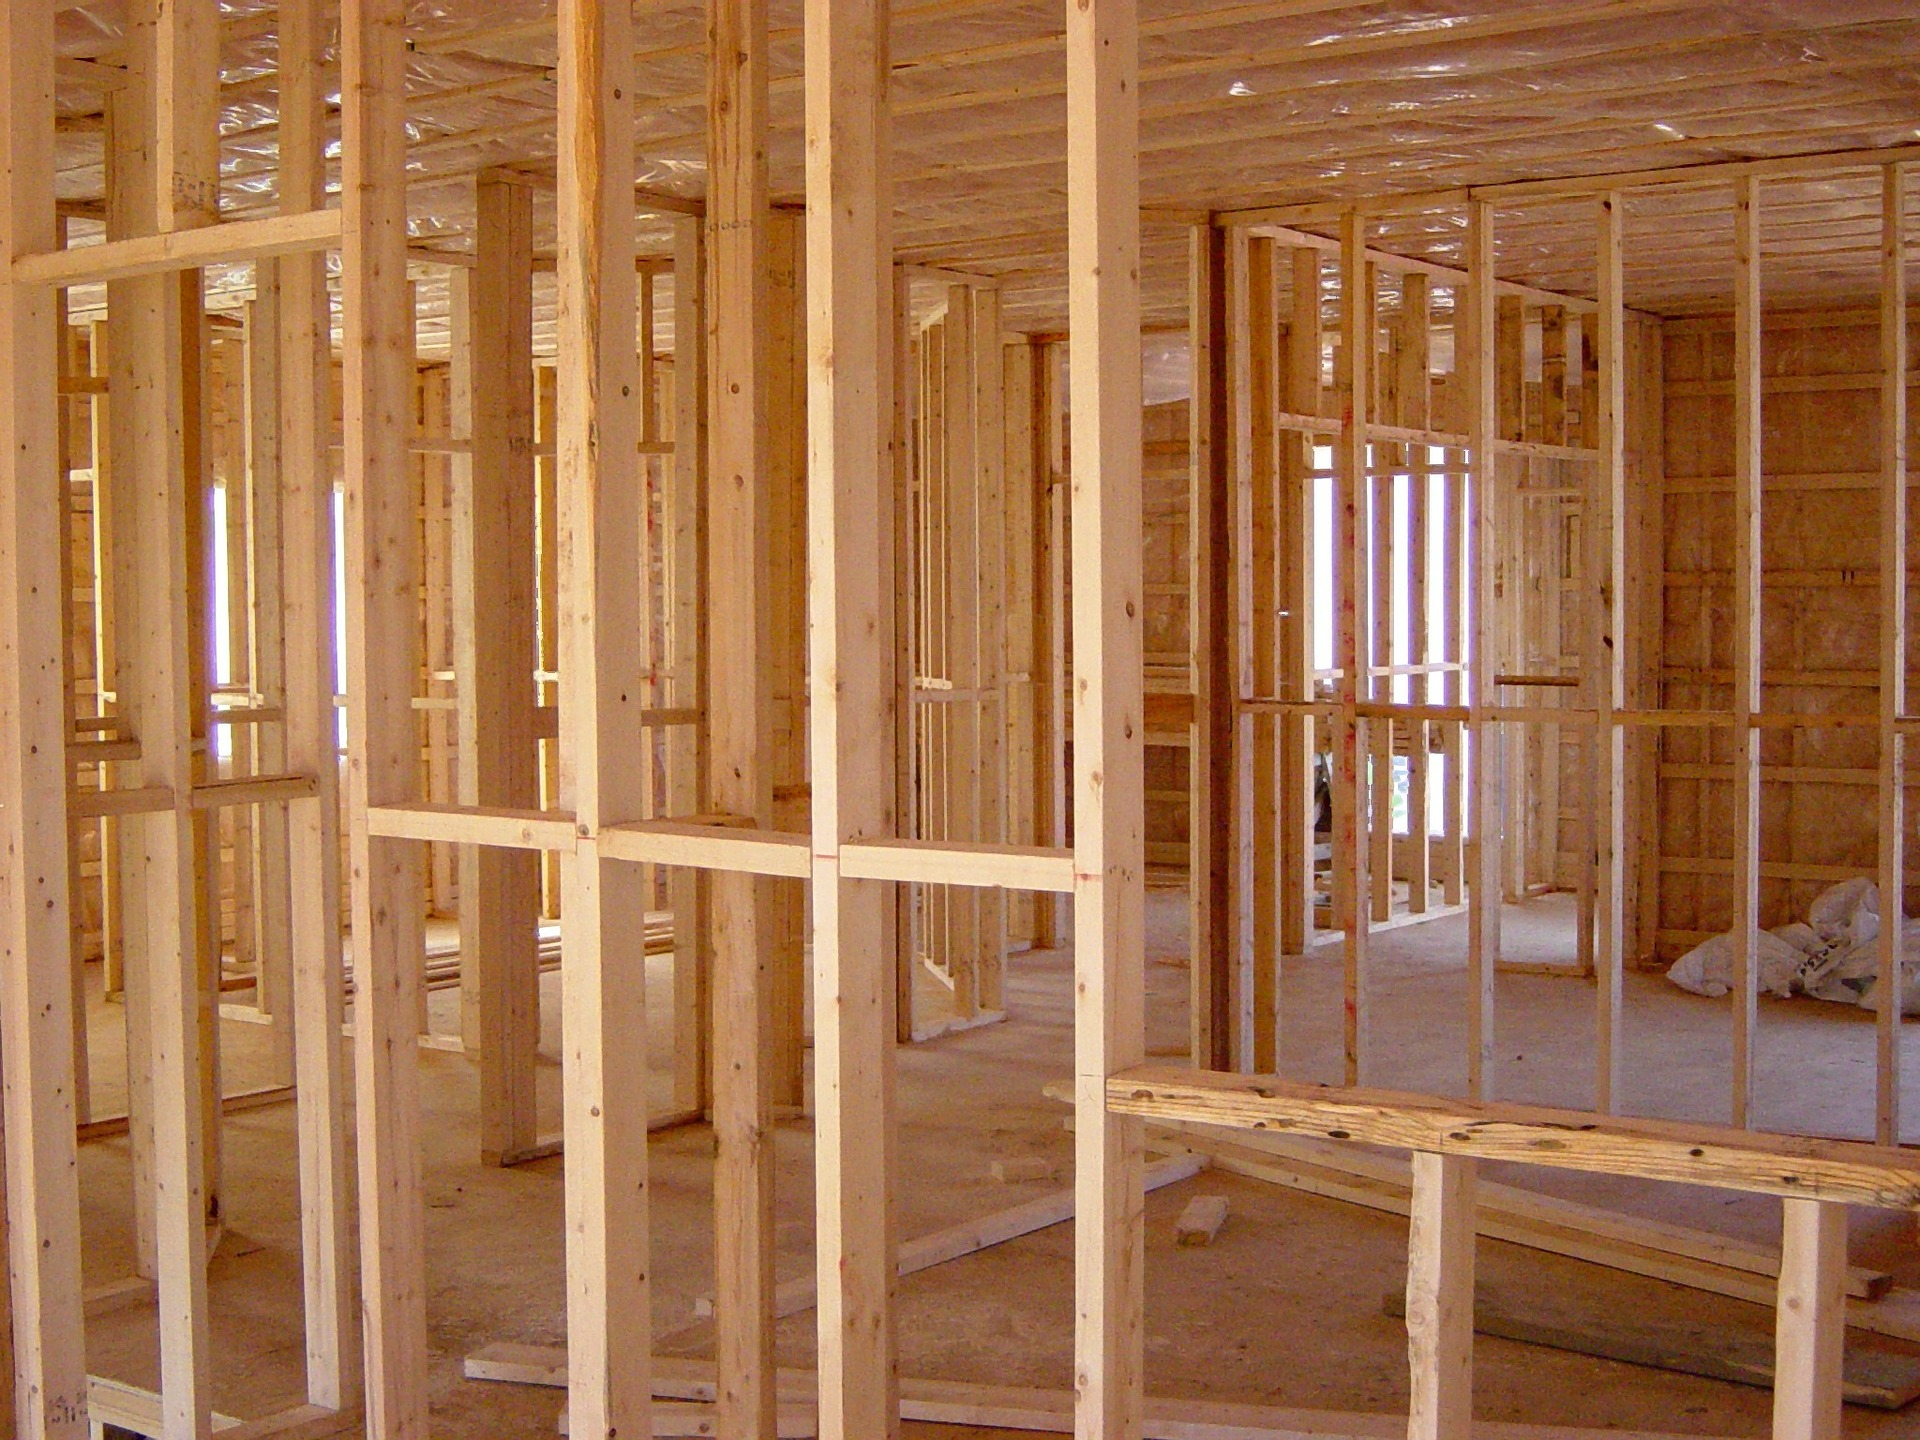 Home Construction Soars to 14-Year High